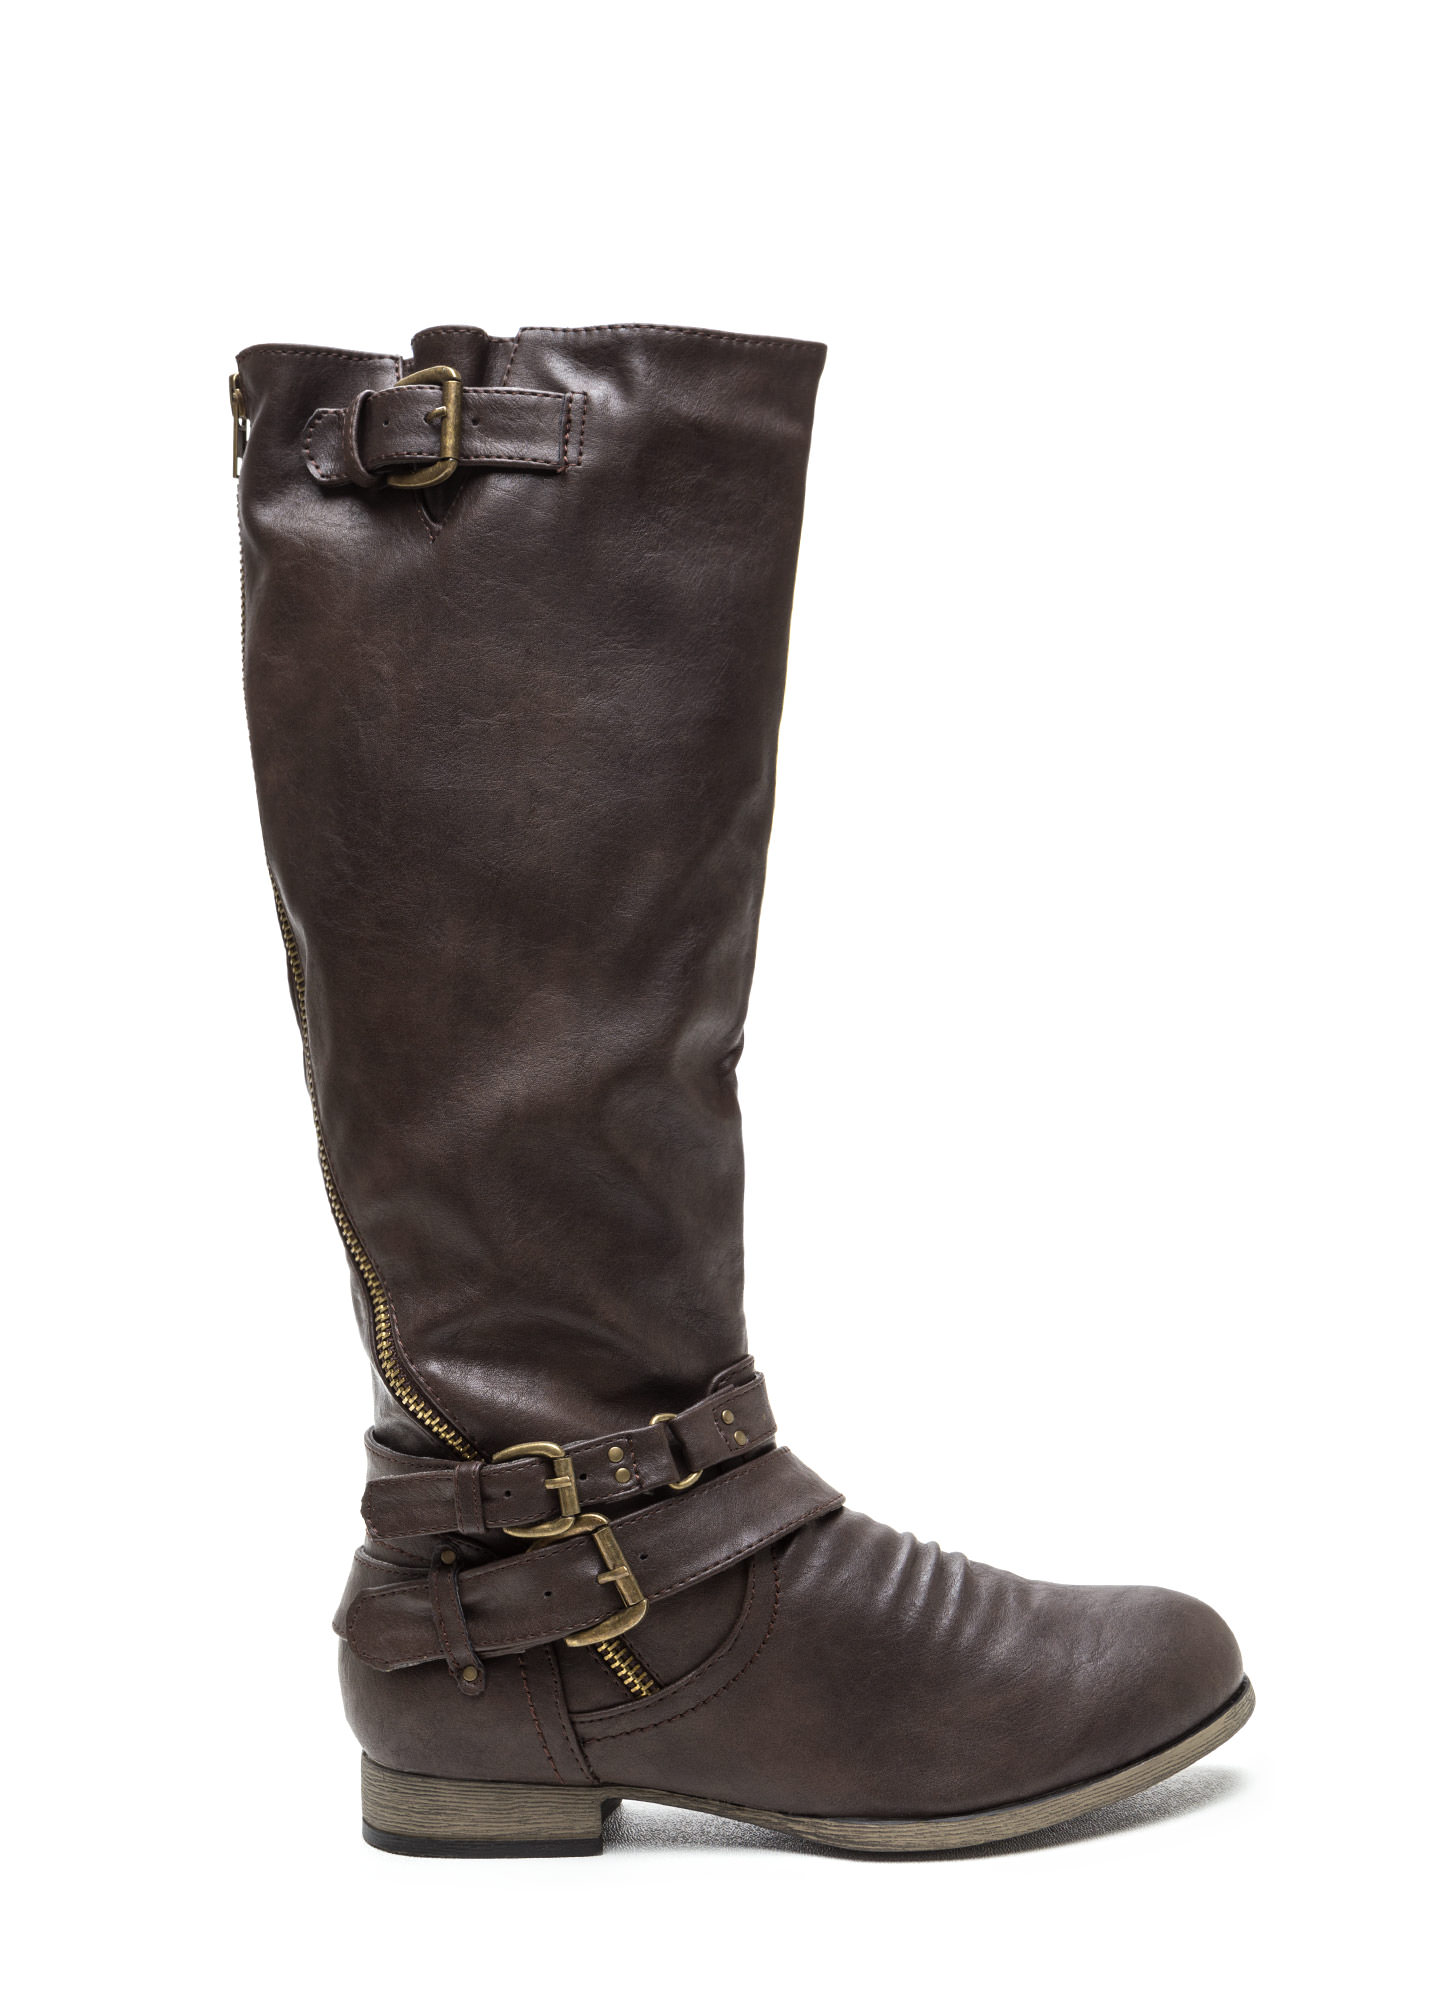 Hop On Faux Leather Moto Boots BROWN (Final Sale)